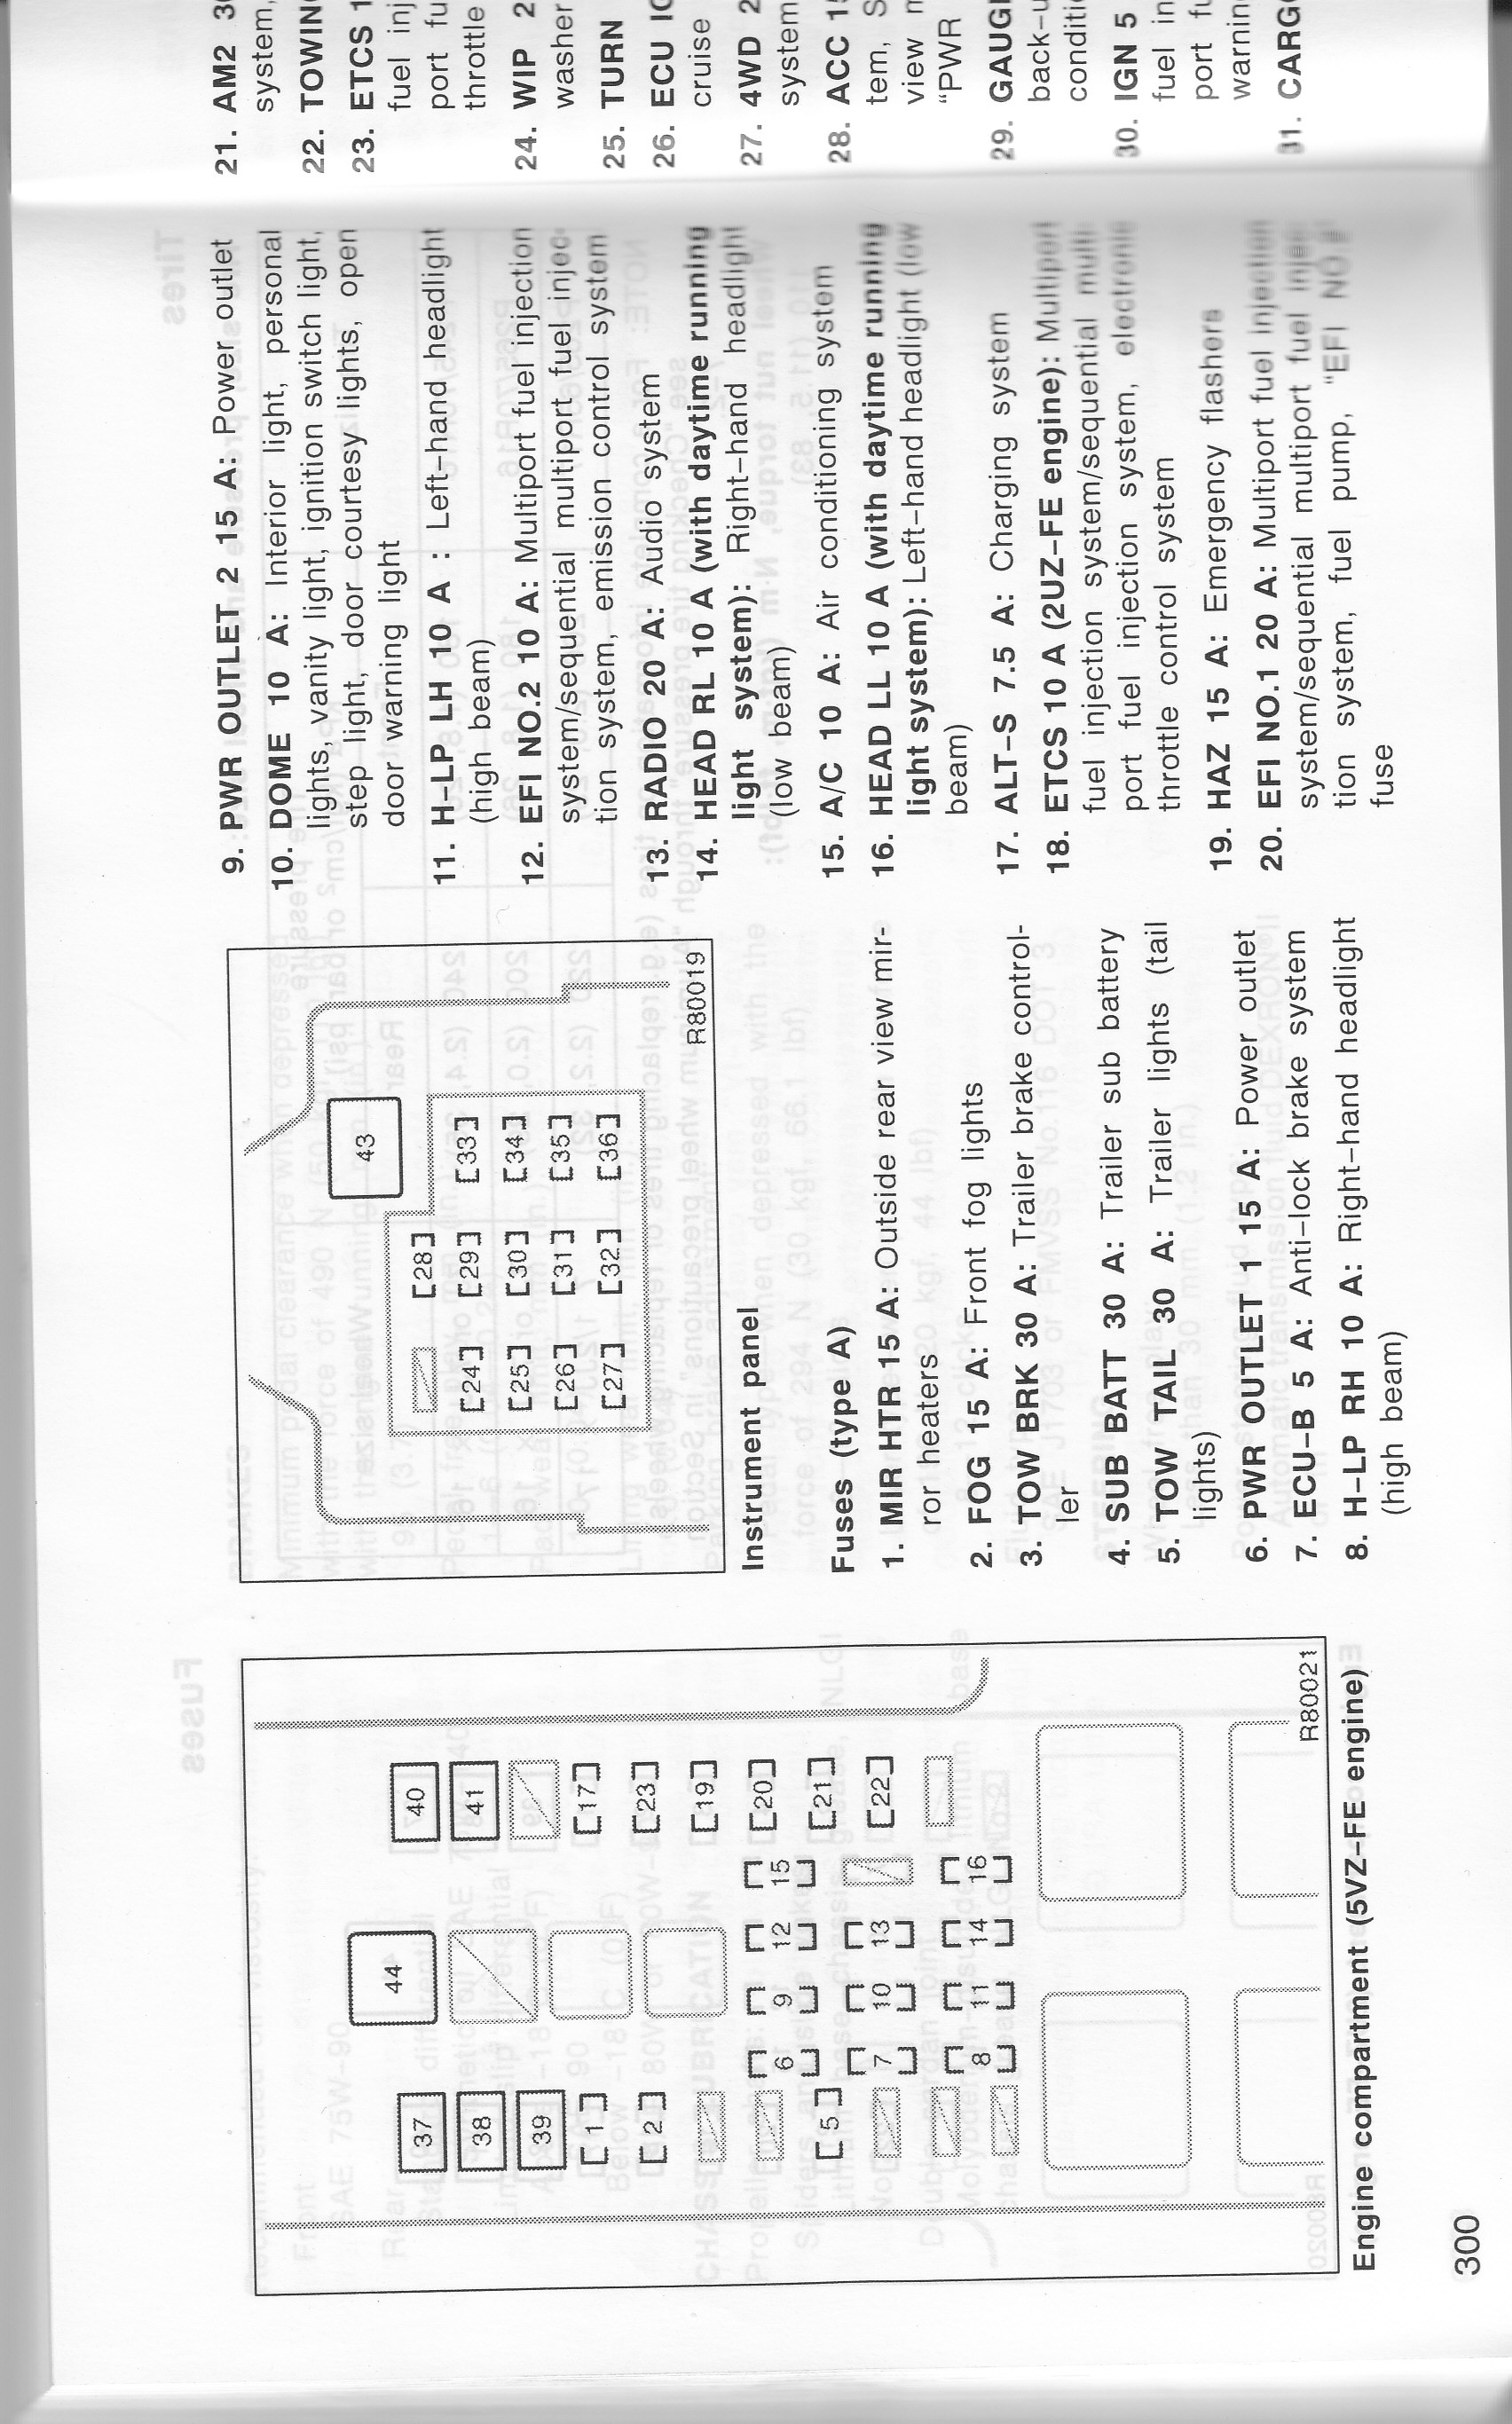 2013 04 02_015309_img_0001 ivan, i have exactly the same issue with my '03 tundra as you had 2010 tundra fuse box diagram at bayanpartner.co